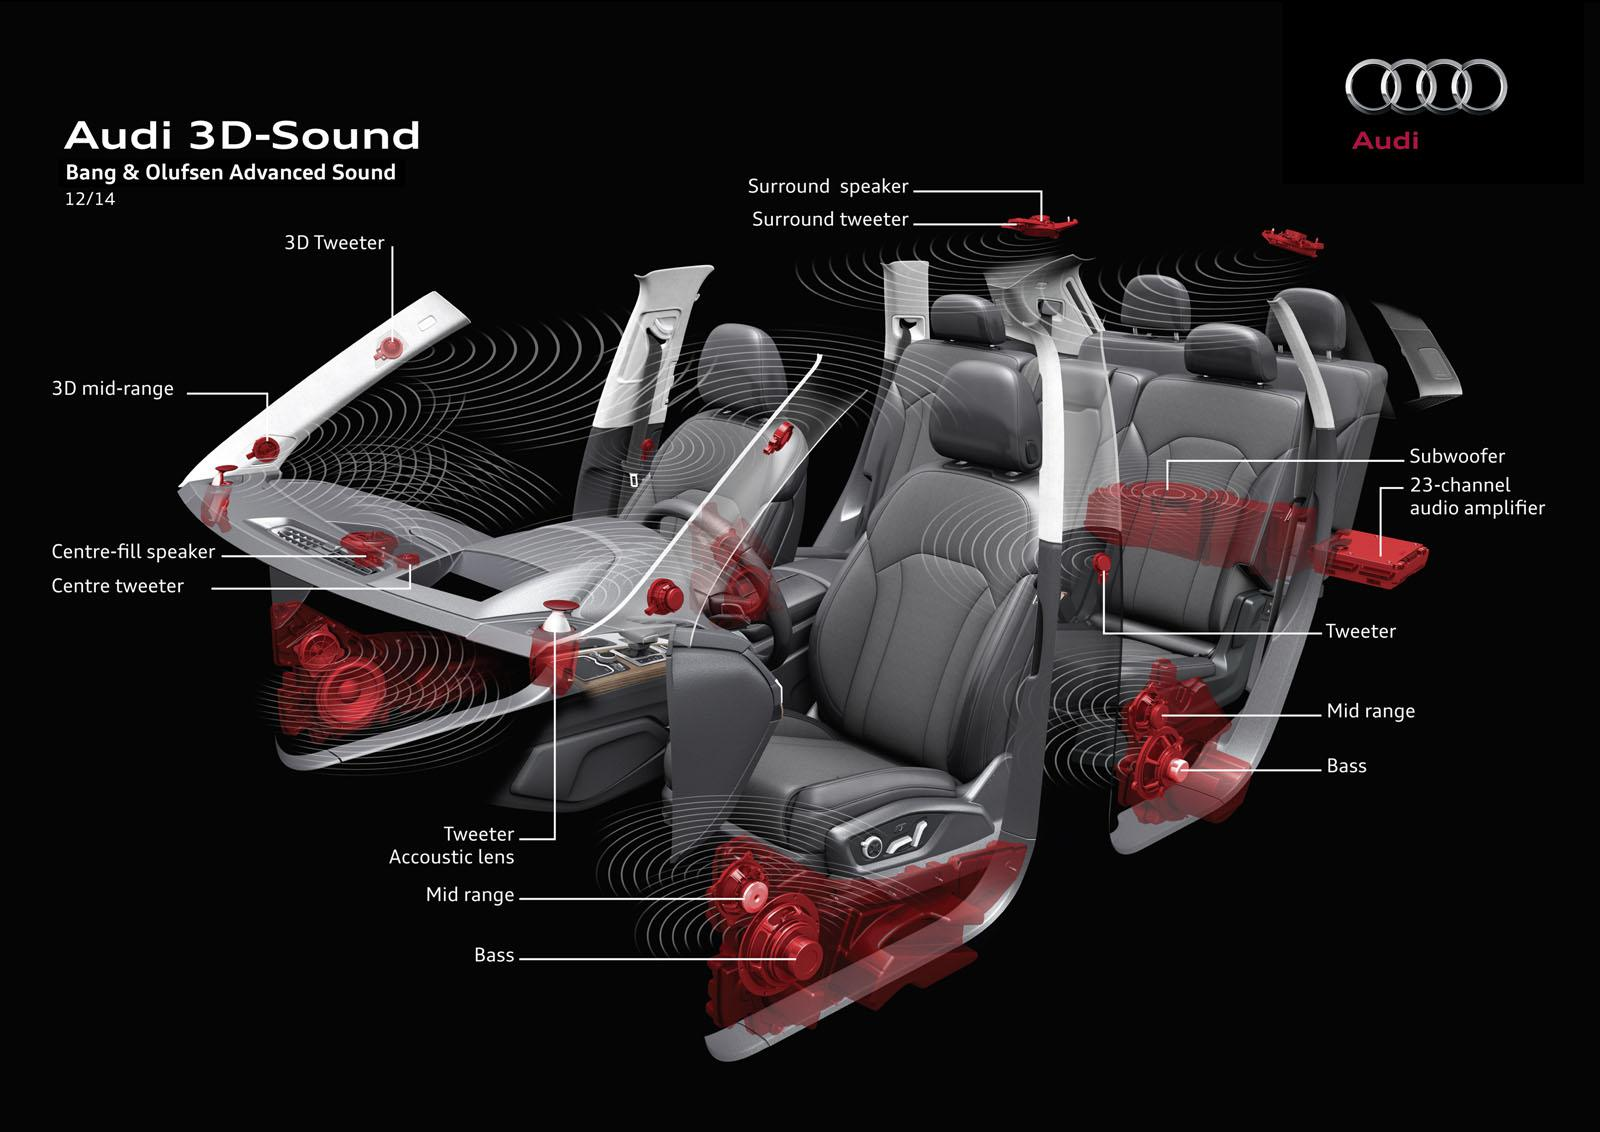 2015 audi q7 3d sound system highlighted gtspirit. Black Bedroom Furniture Sets. Home Design Ideas